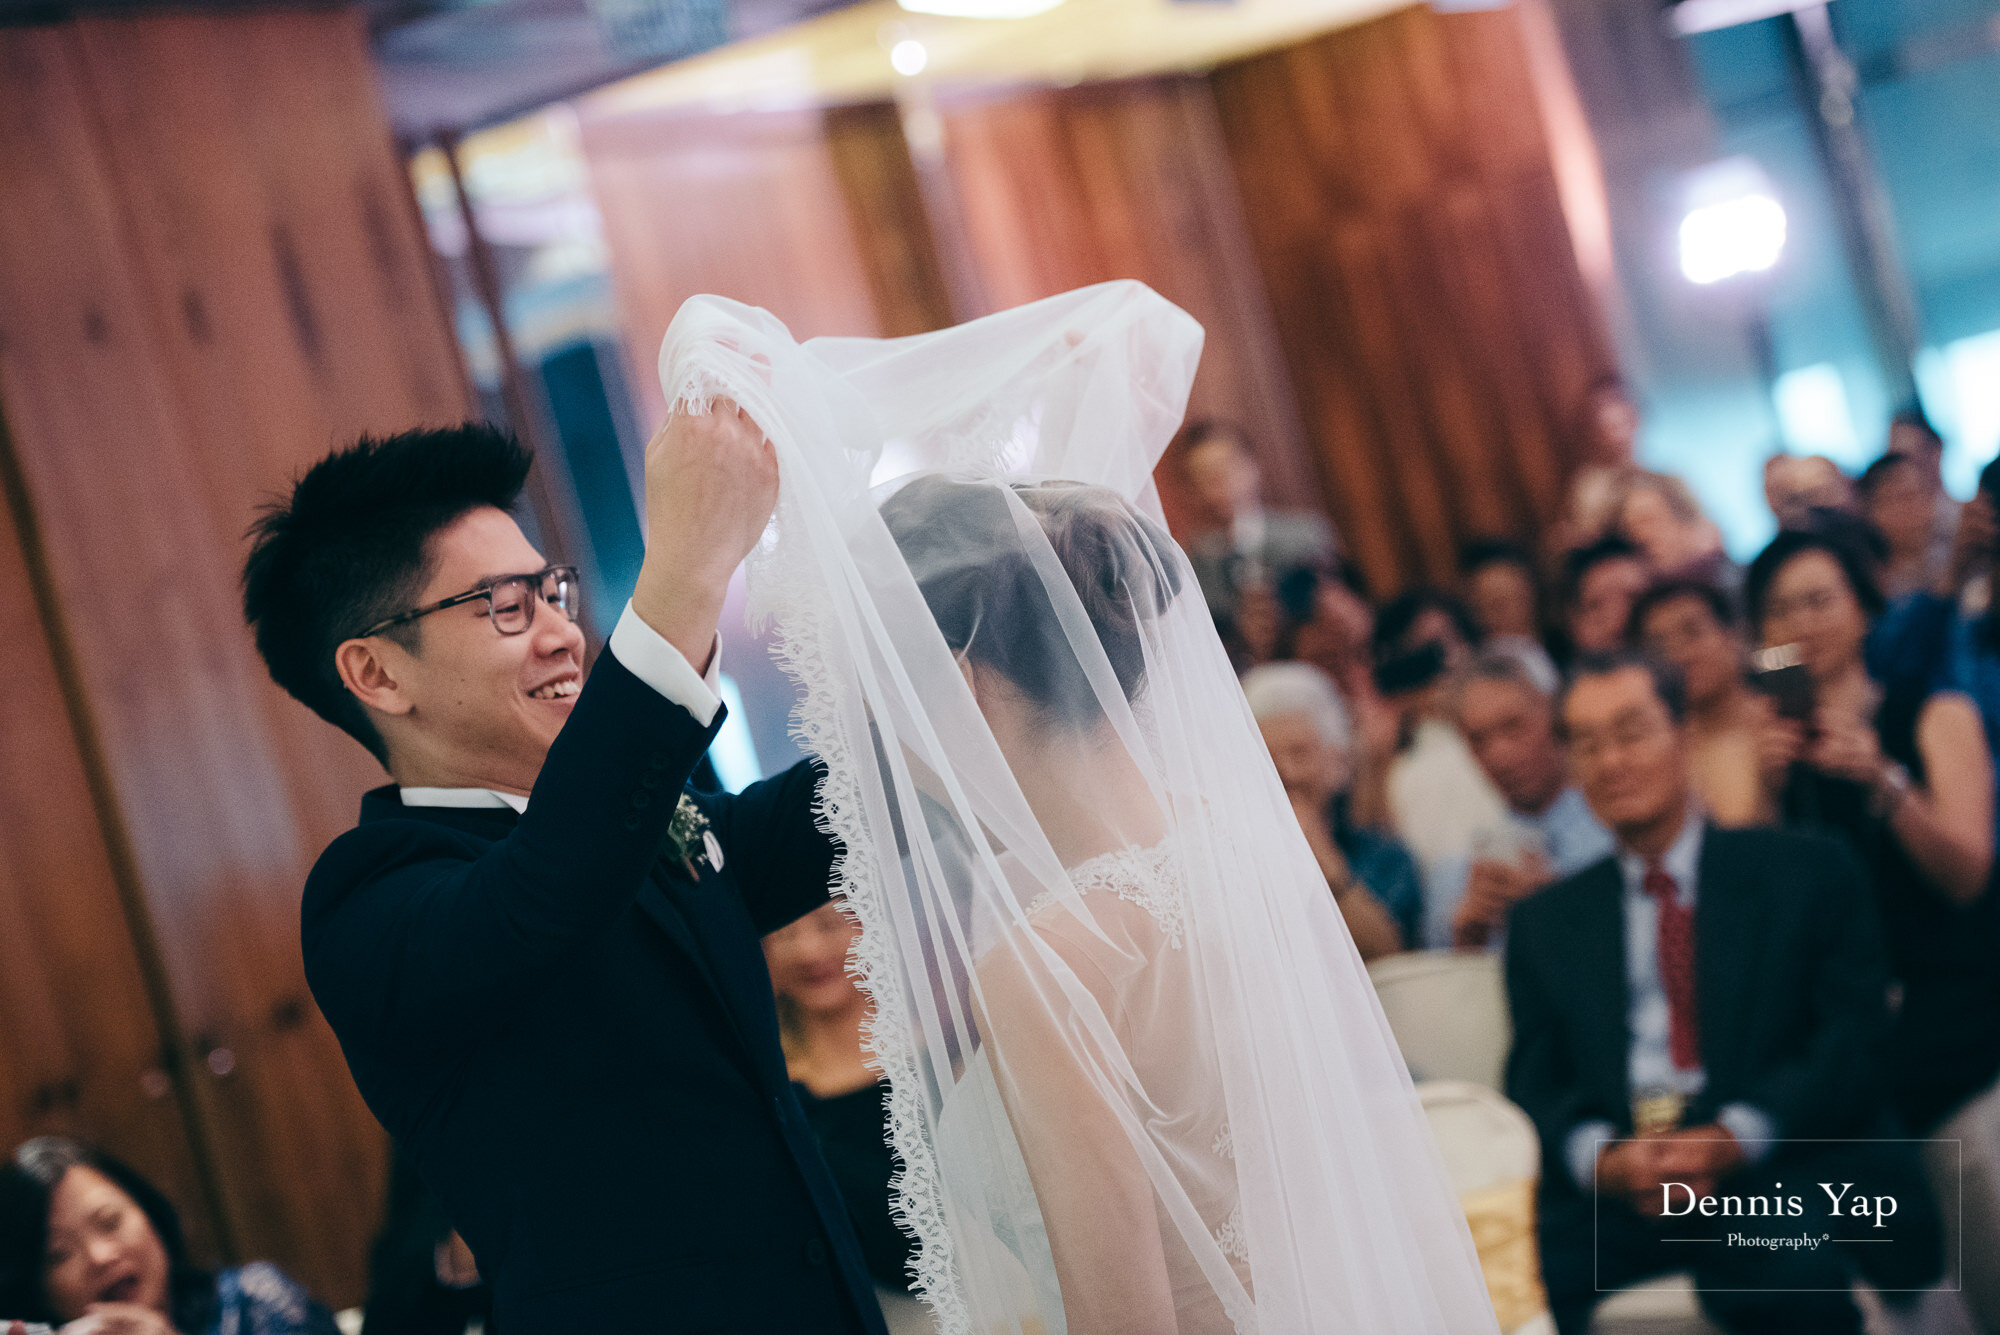 kevan khing wei wedding day hilton kuala lumpur vow exchange ceremony dennis yap photography malaysia top wedding photographer-22.jpg